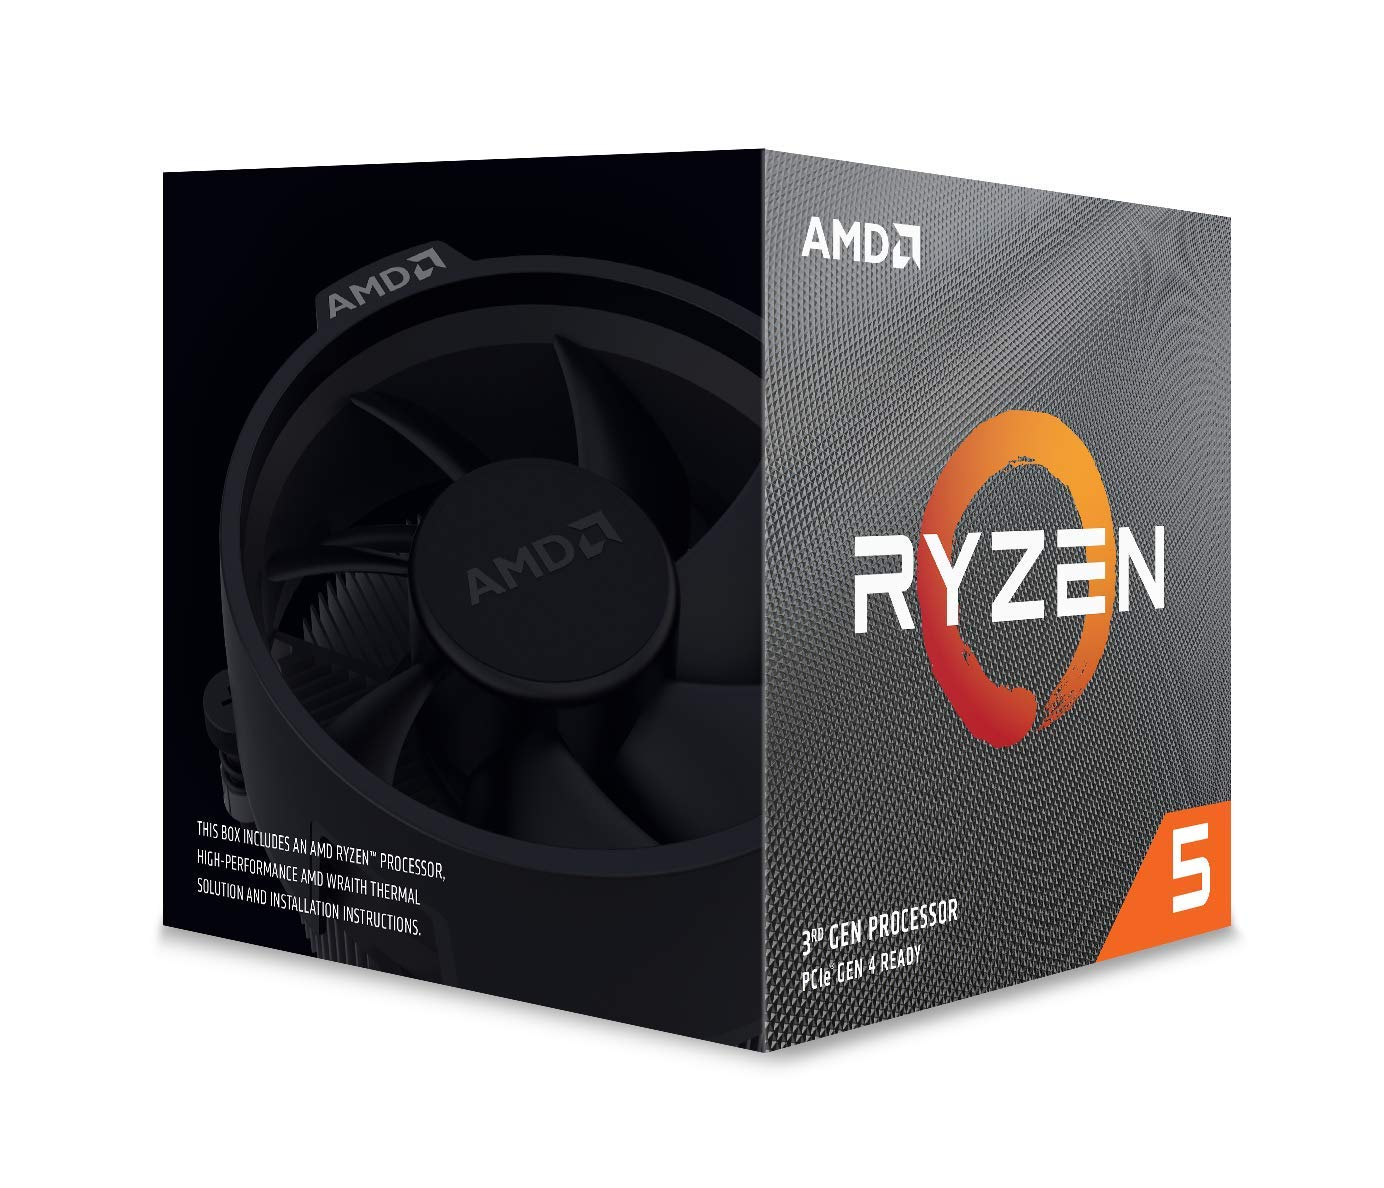 AMD Ryzen 5 3600X 6-Core, 12-Thread Unlocked Desktop Processor with Wraith Spire Cooler by AMD (Image #1)